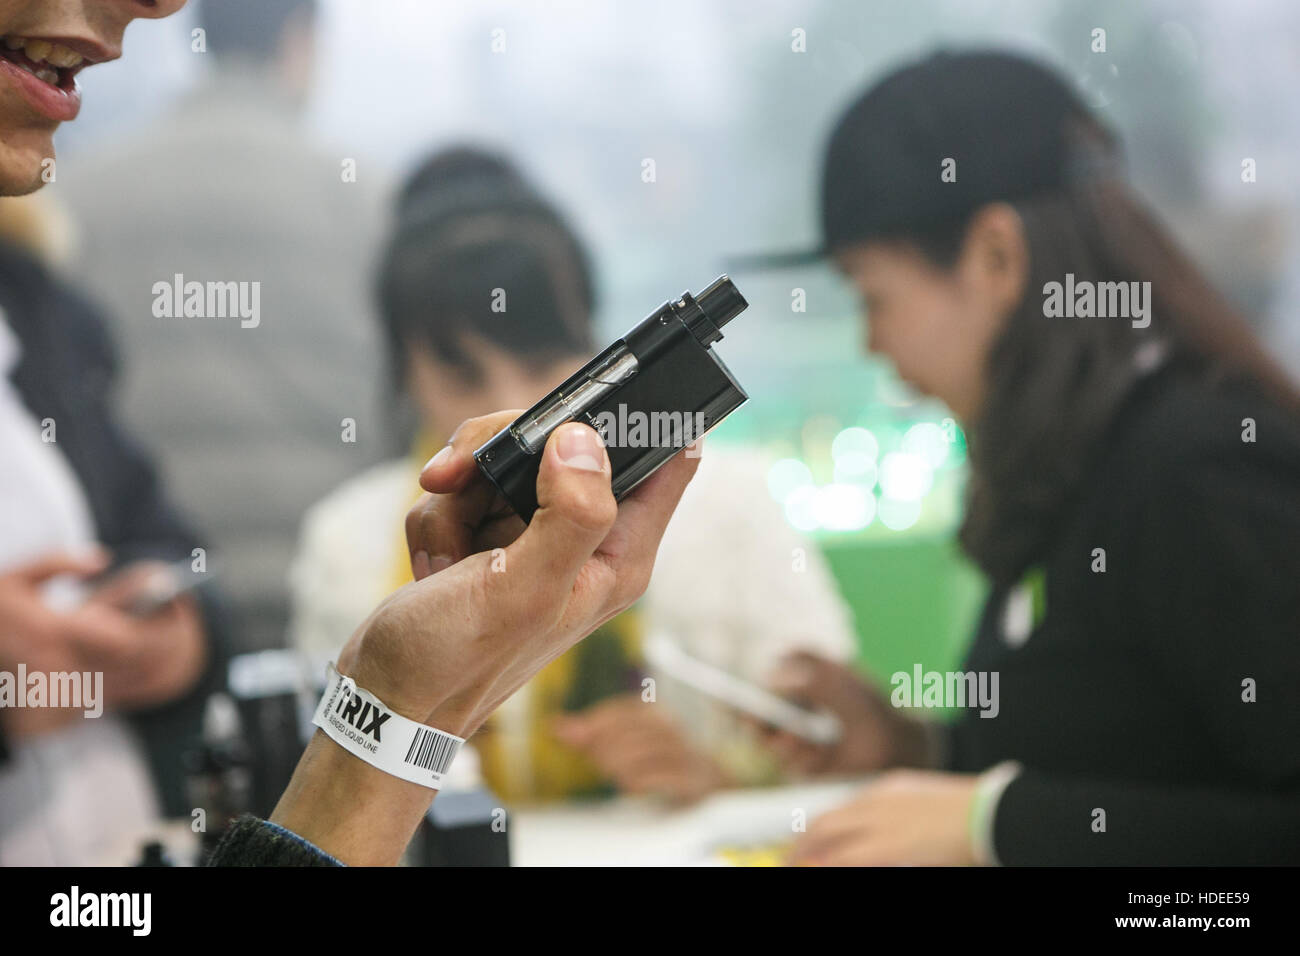 MOSCOW - 9 DECEMBER,2016: International Vape Expo.Man try new vaper ejuice liquid and vapind device gadget - Stock Image